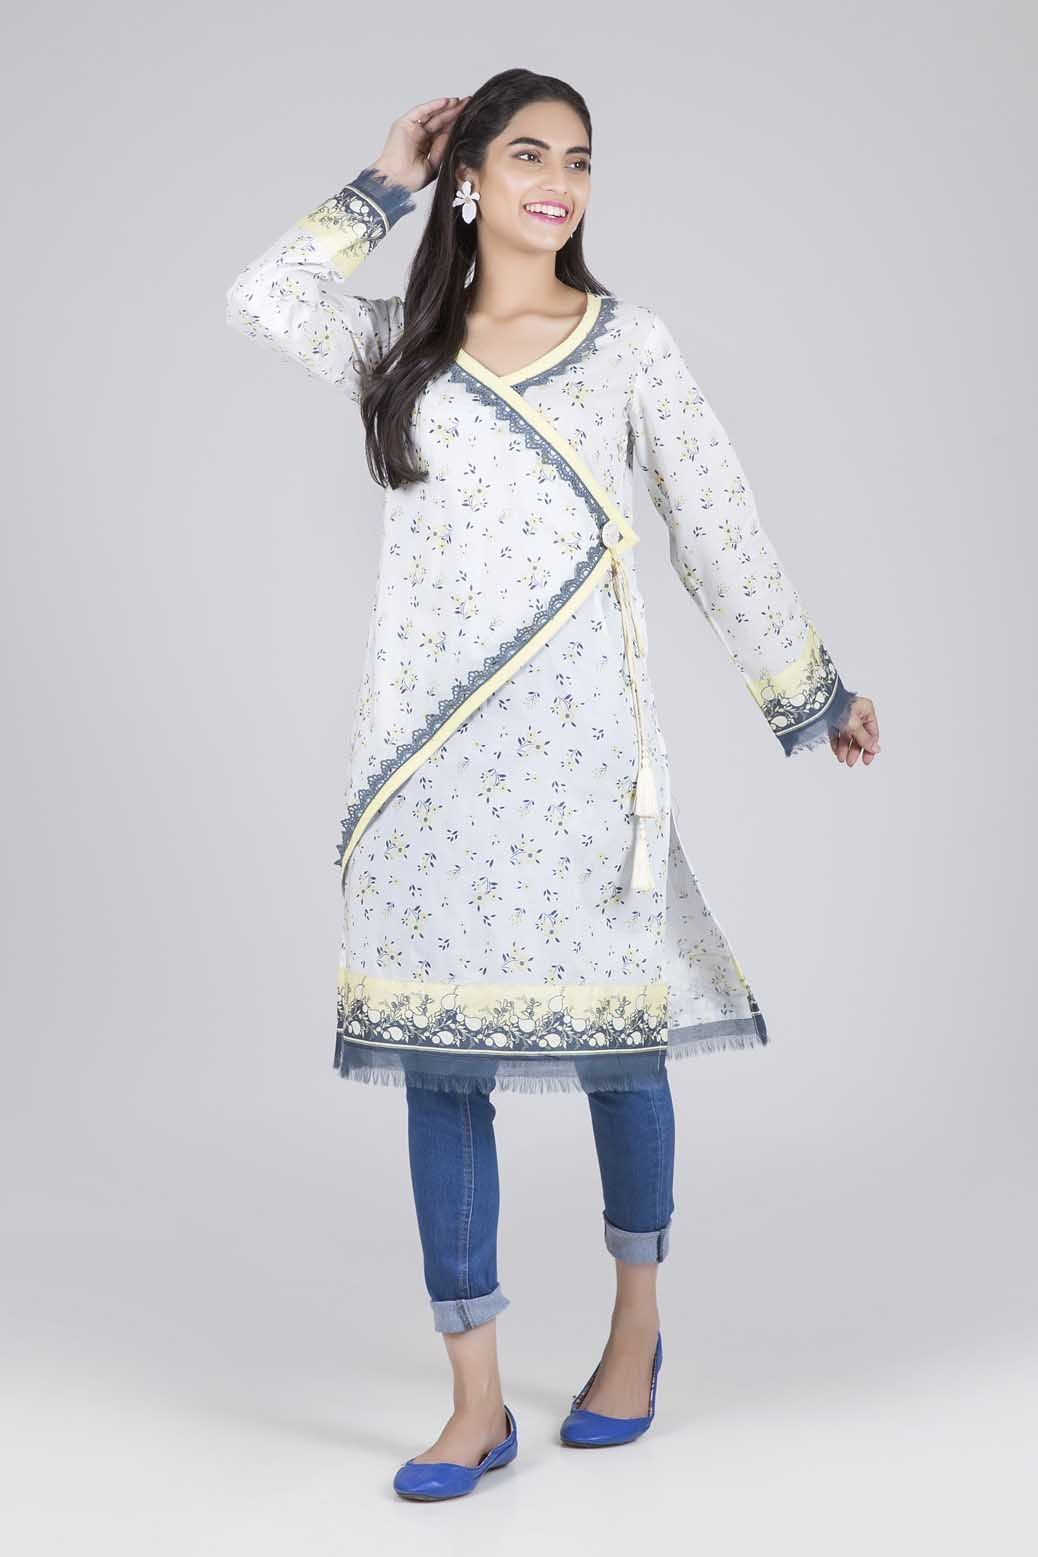 Bonanza Satrangi - White Spring Radiance - 1 PC